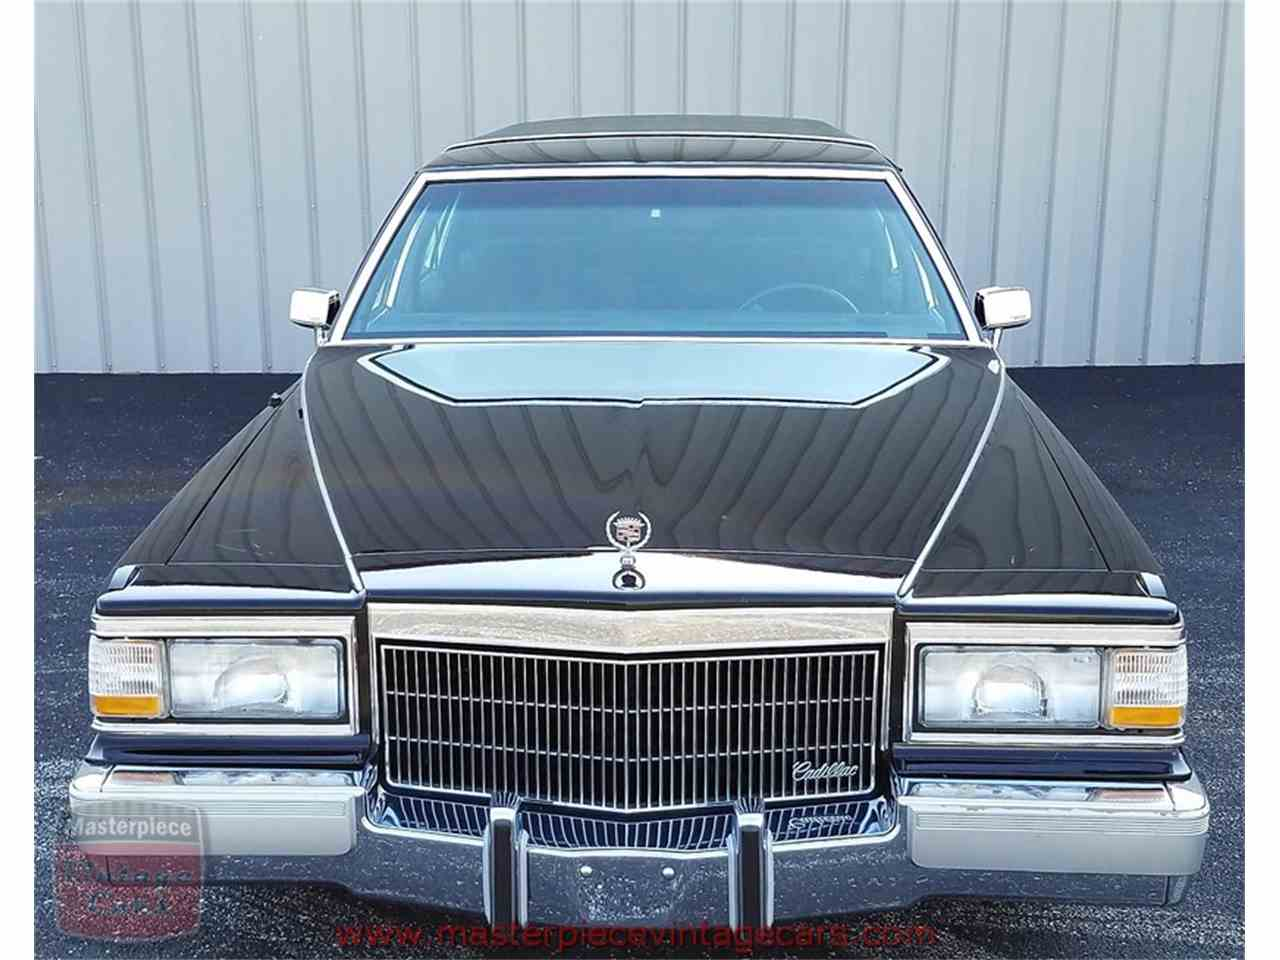 Large Picture of '91 Limousine located in Indiana - $9,950.00 Offered by Masterpiece Vintage Cars - L3S4